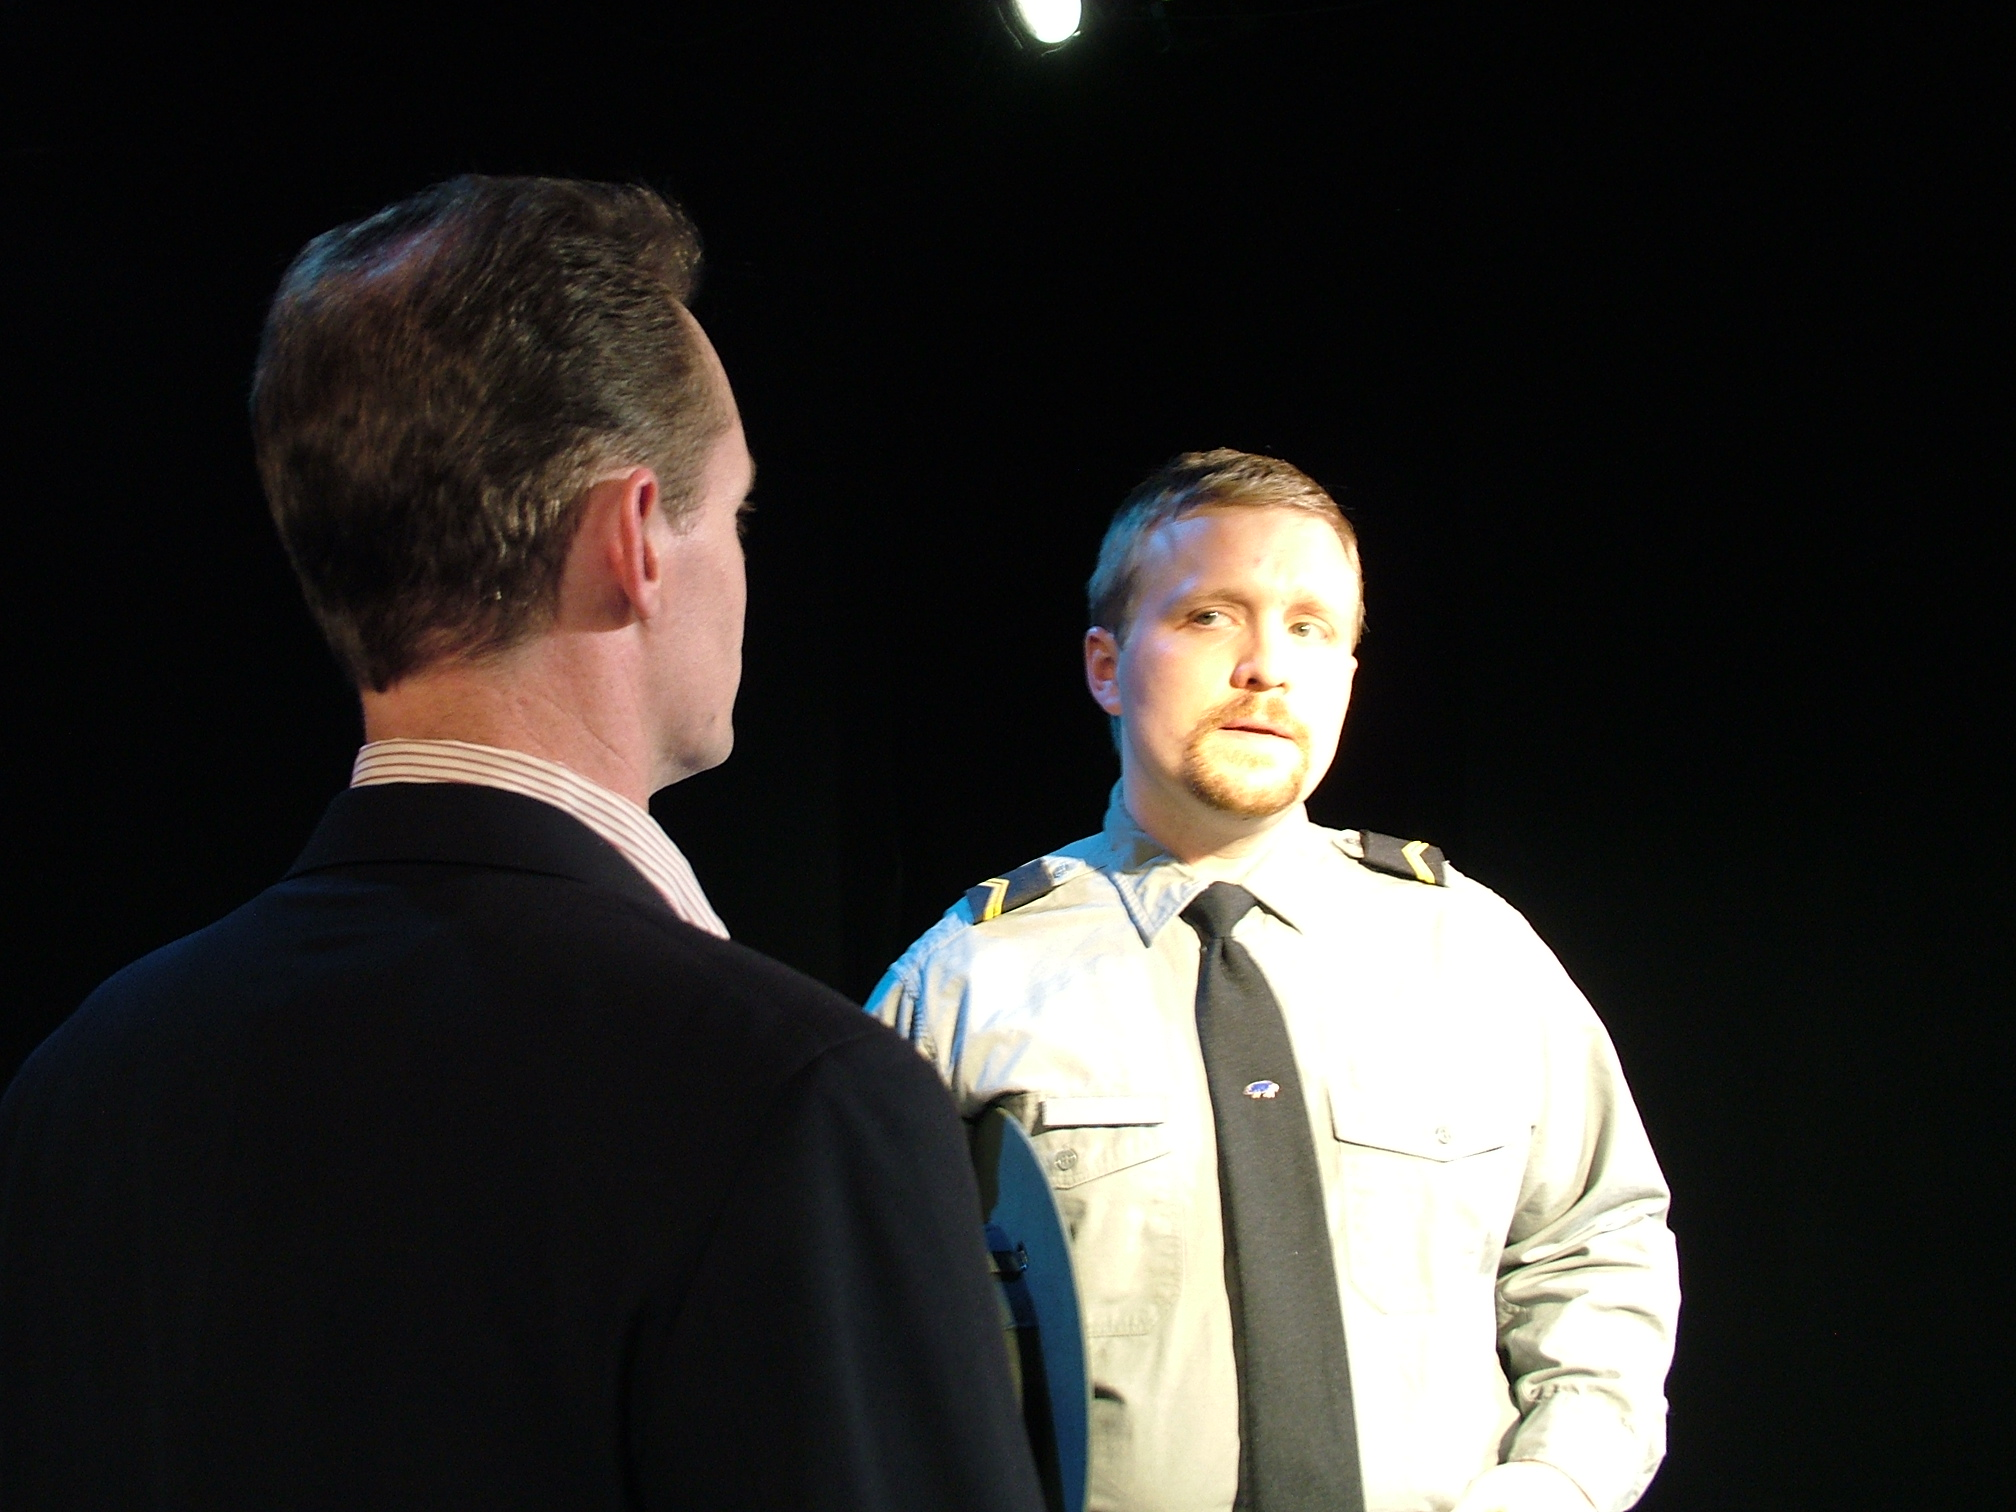 Tom Staggs and David DelGrosso as Gordon and Cop in When Is A Clock (2008)